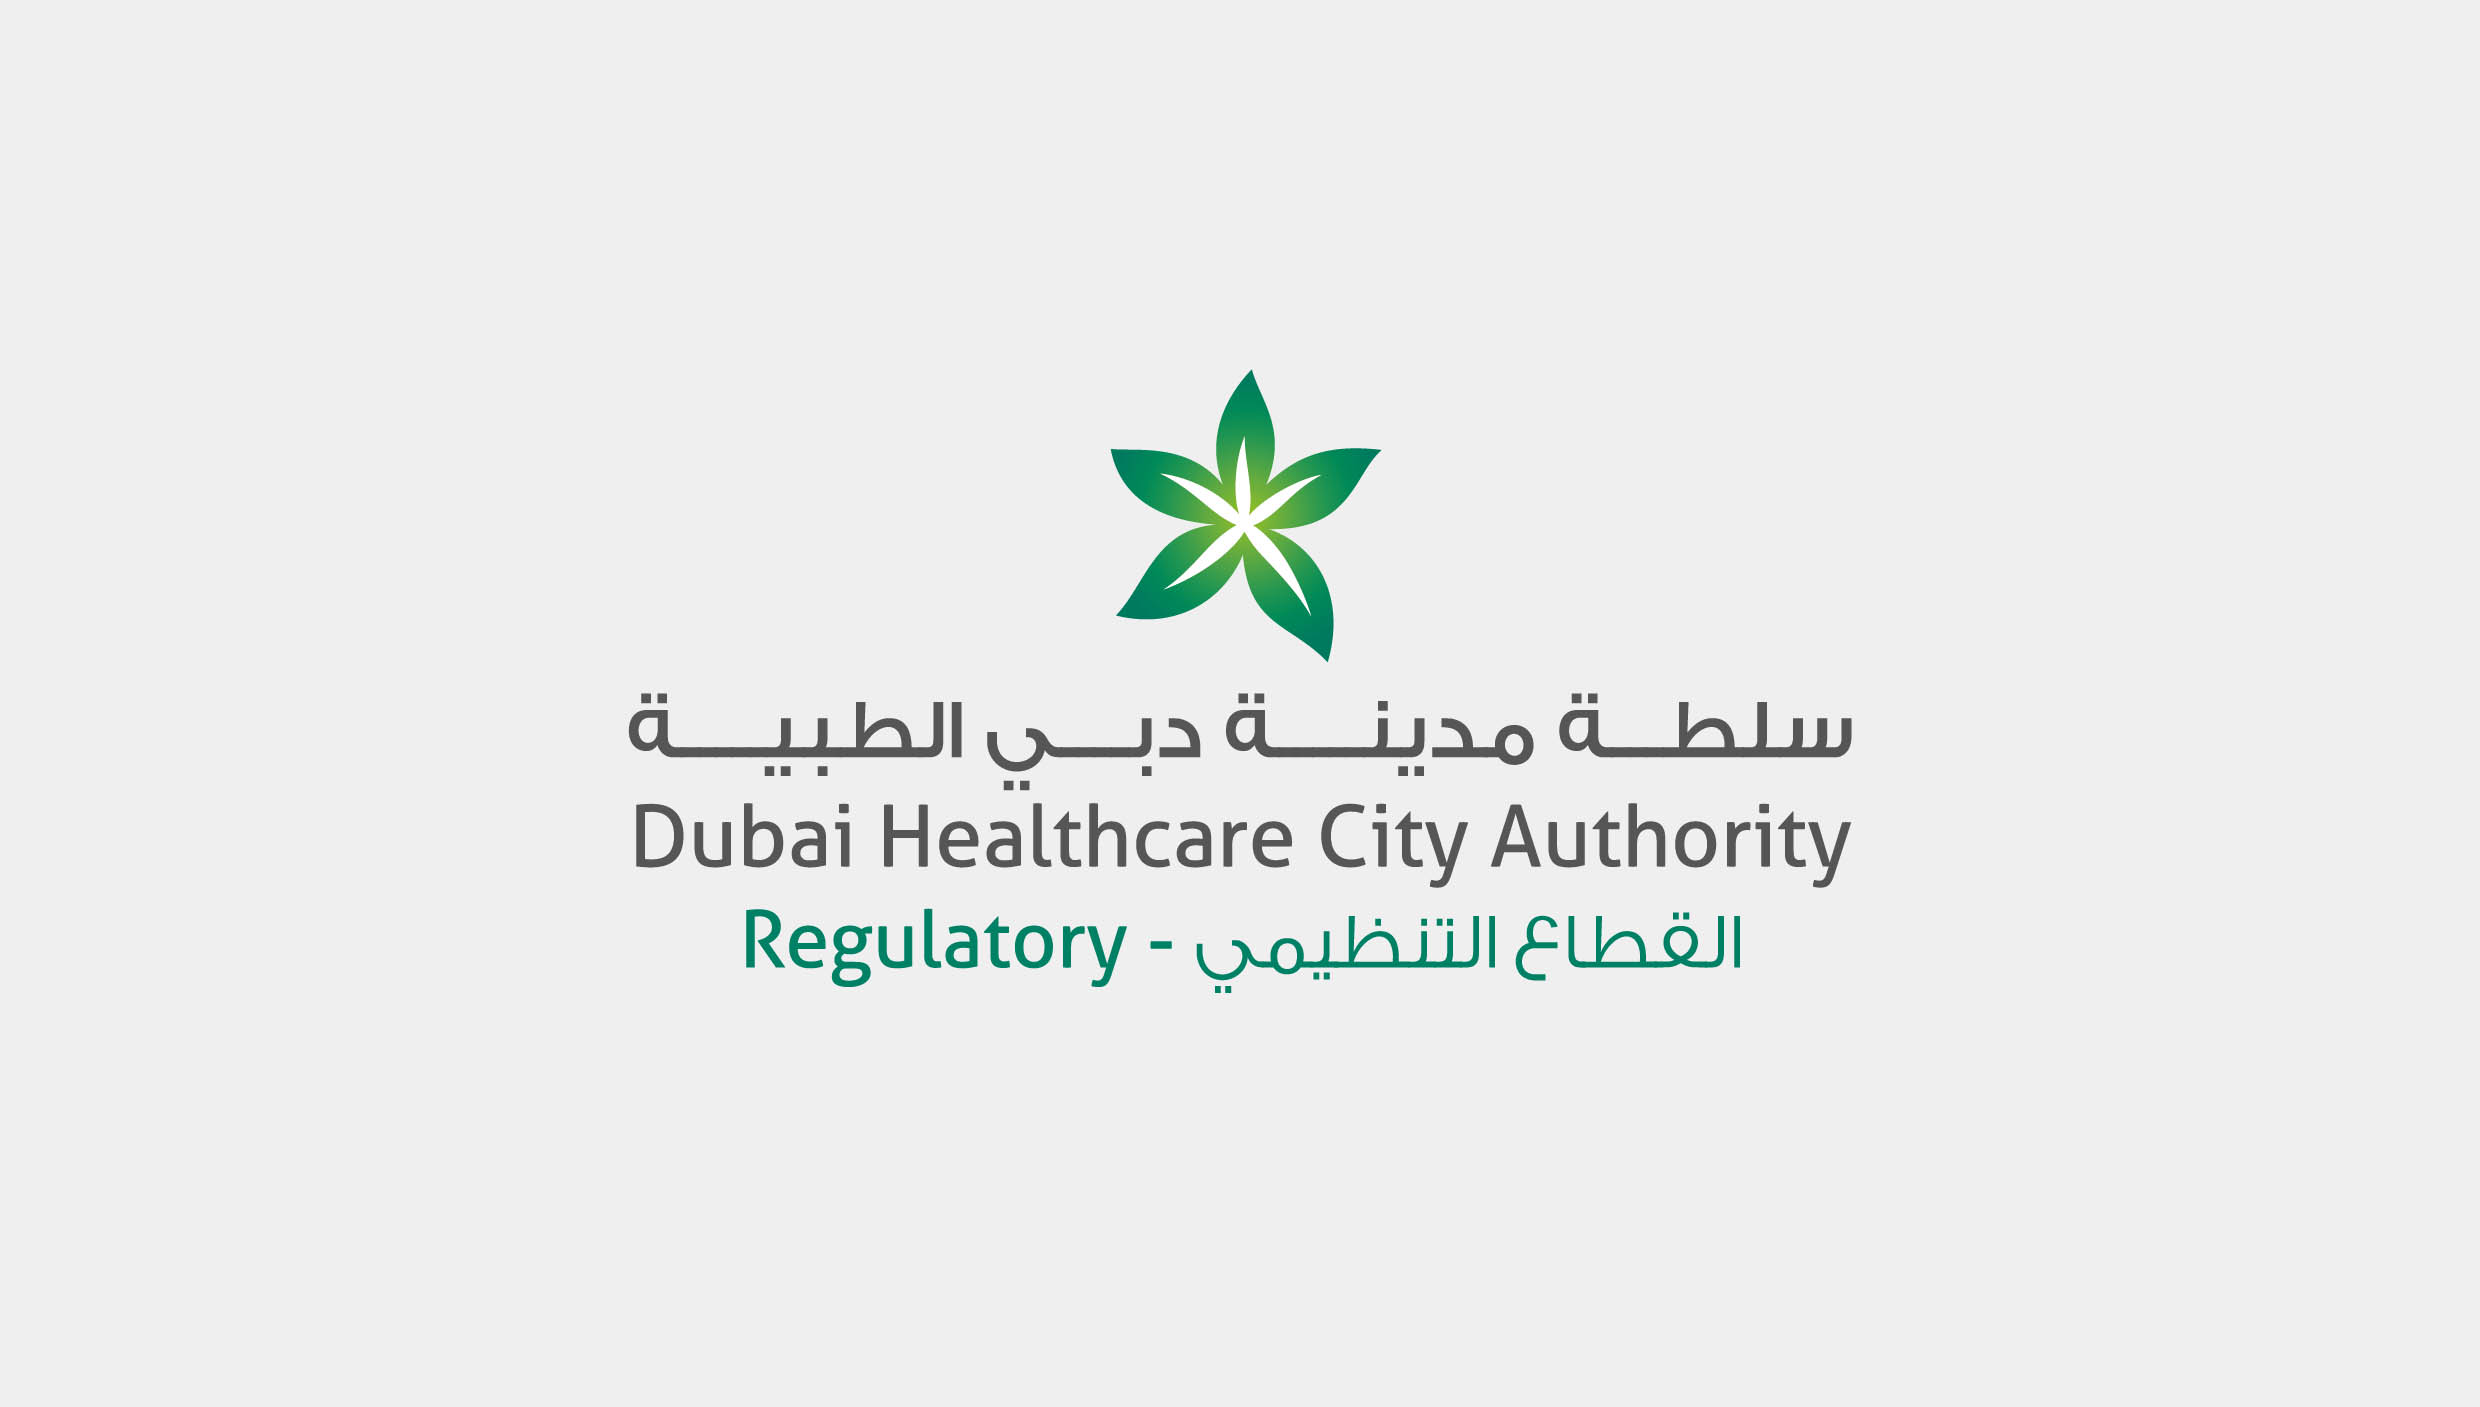 UAE Ministry of Health and Prevention alert recall of products 2